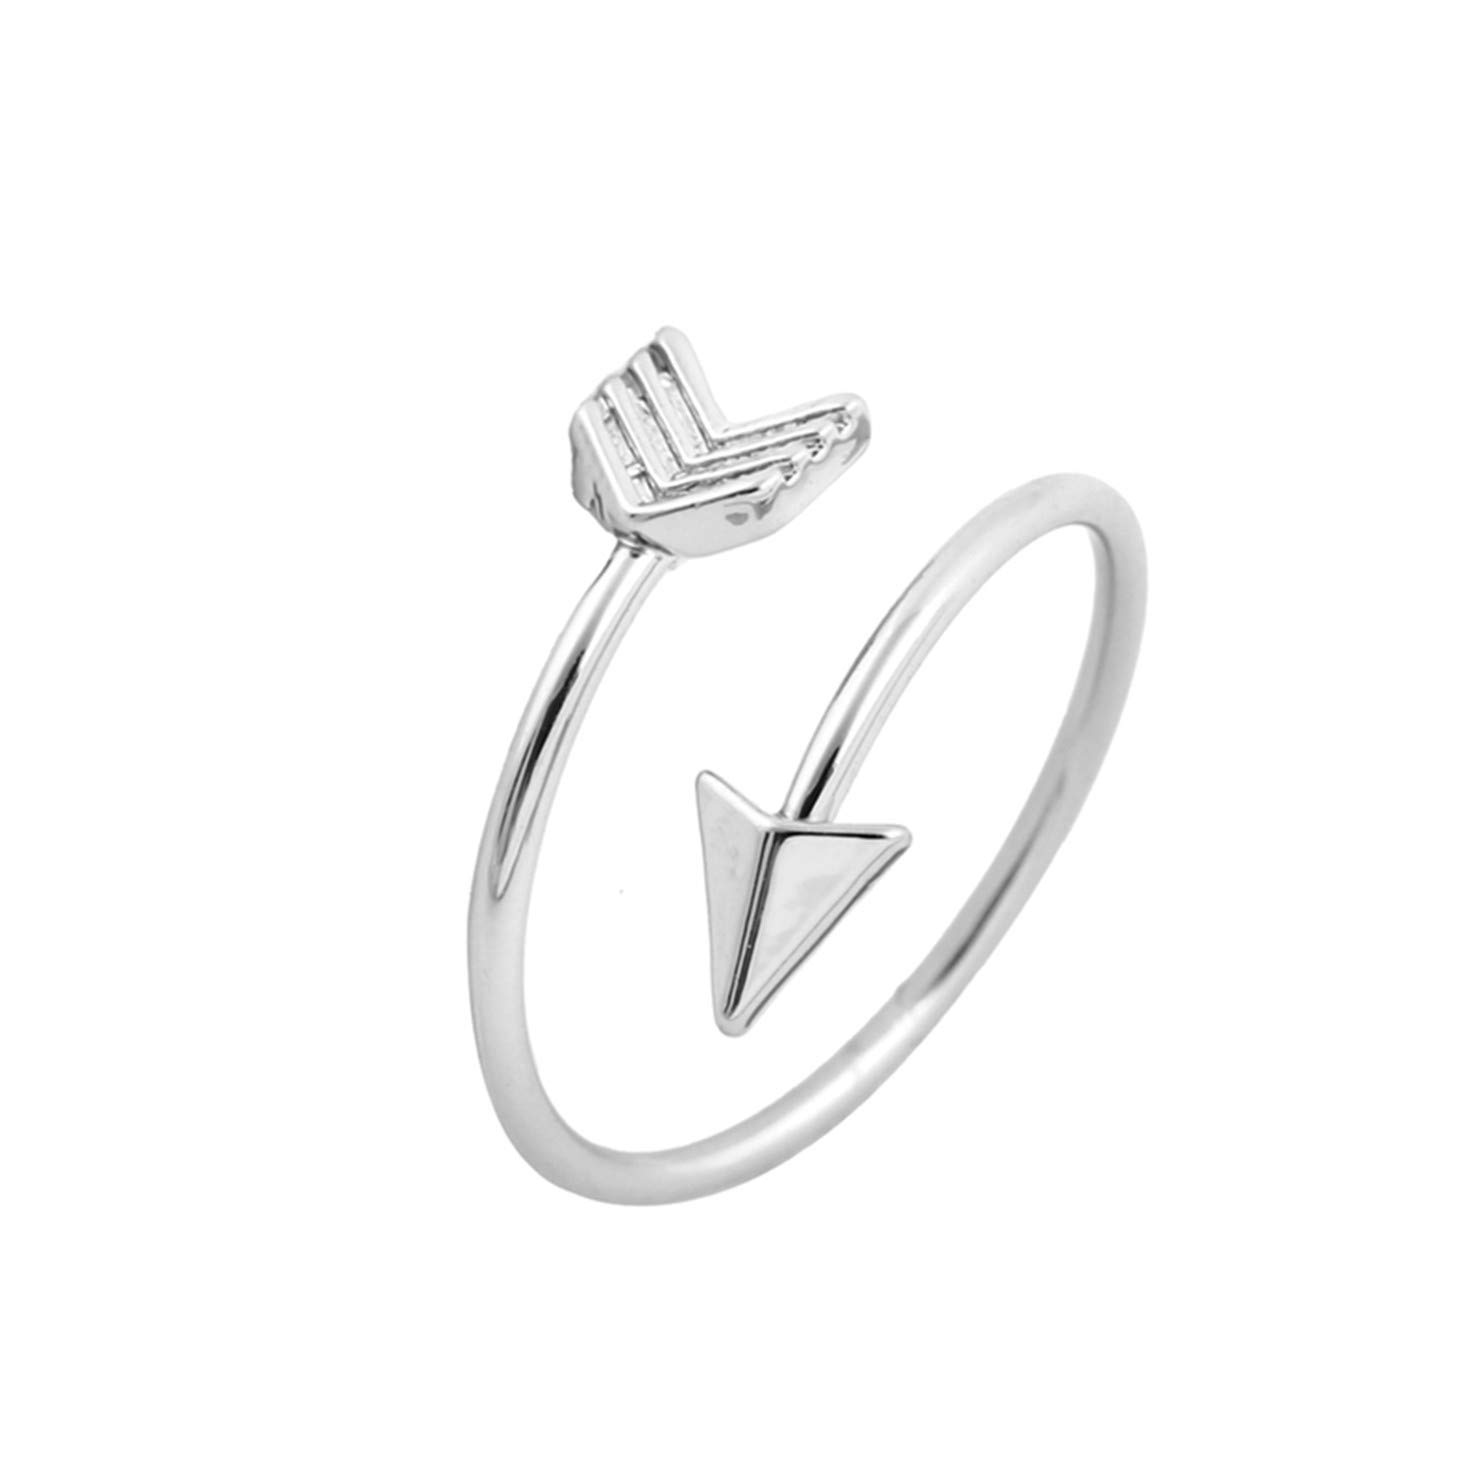 New Classical Silver Color Arrow Ring Fashion Ring for Women Adjustable Engagement Wedding Gift Jewelry D by FuNi Rings